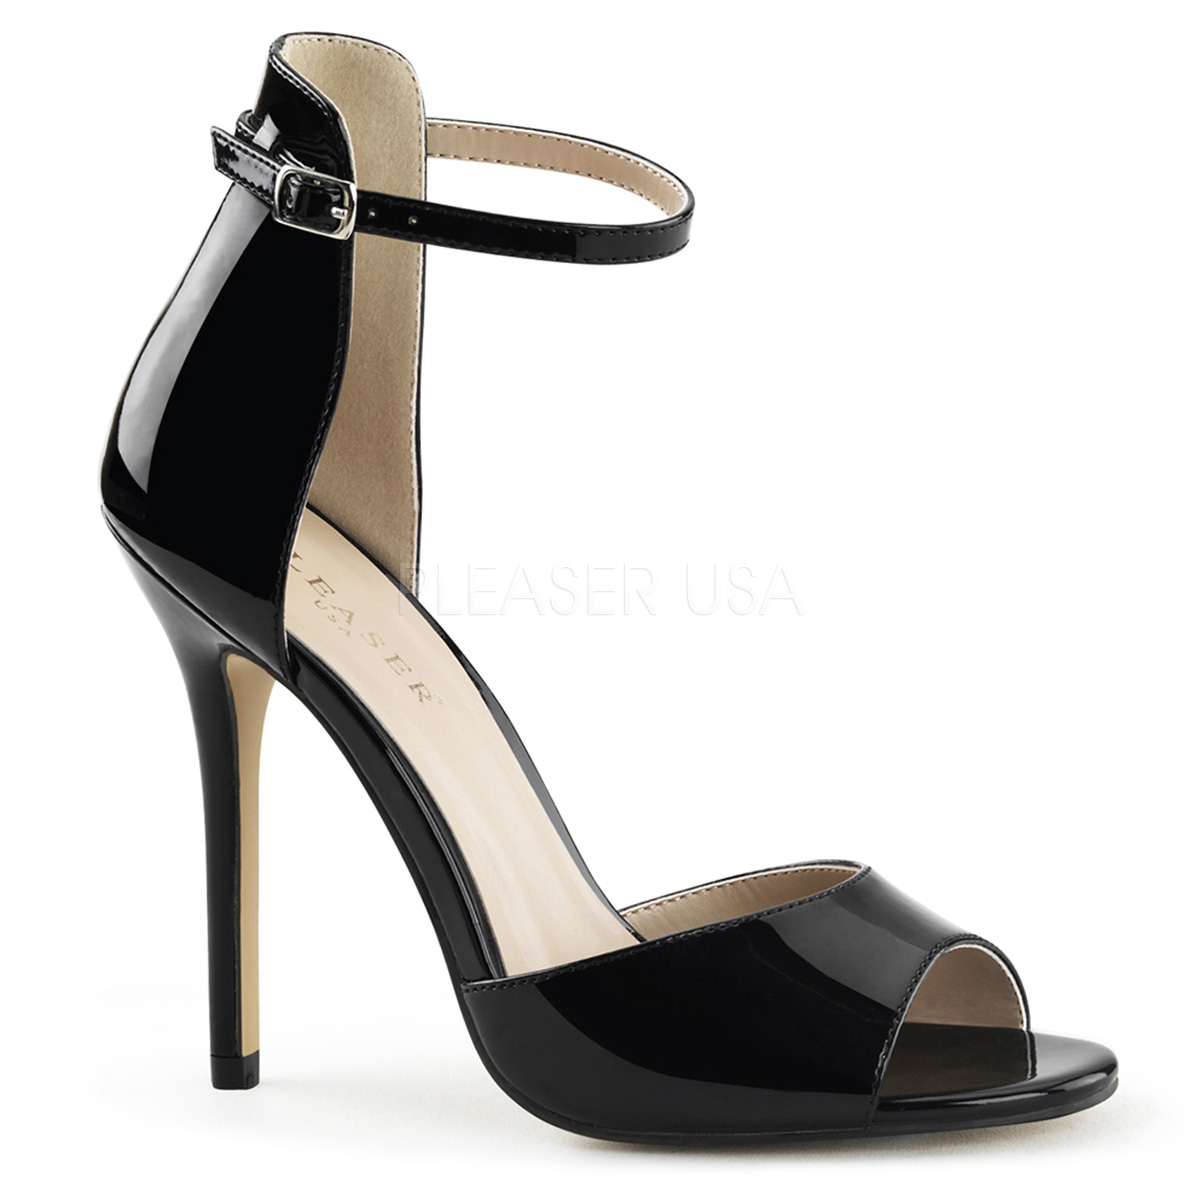 5 Inch Stiletto Heel Closed Back Ankle Strap Sandal